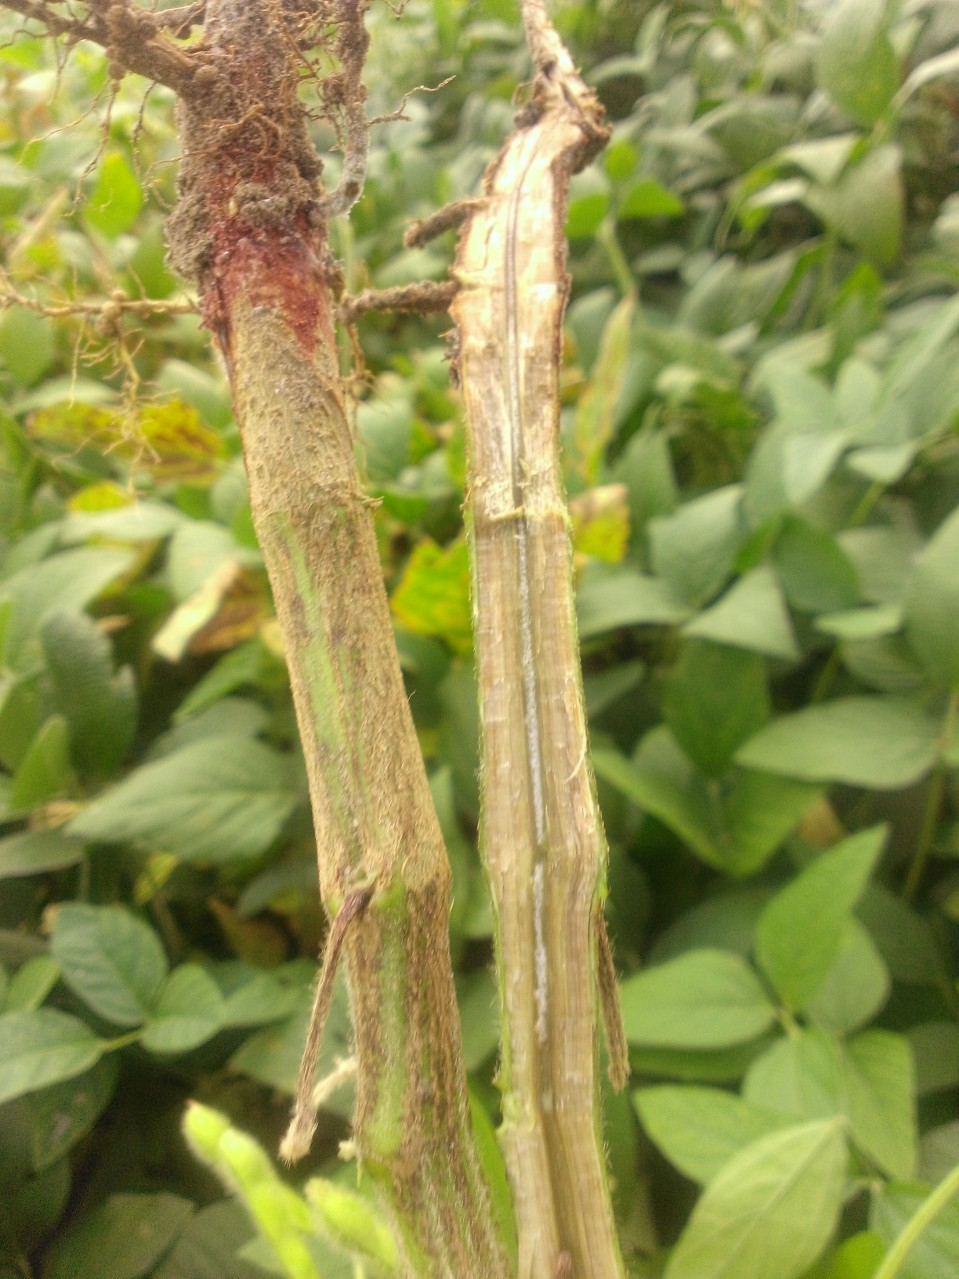 SDS Symptoms in Soybean Stem